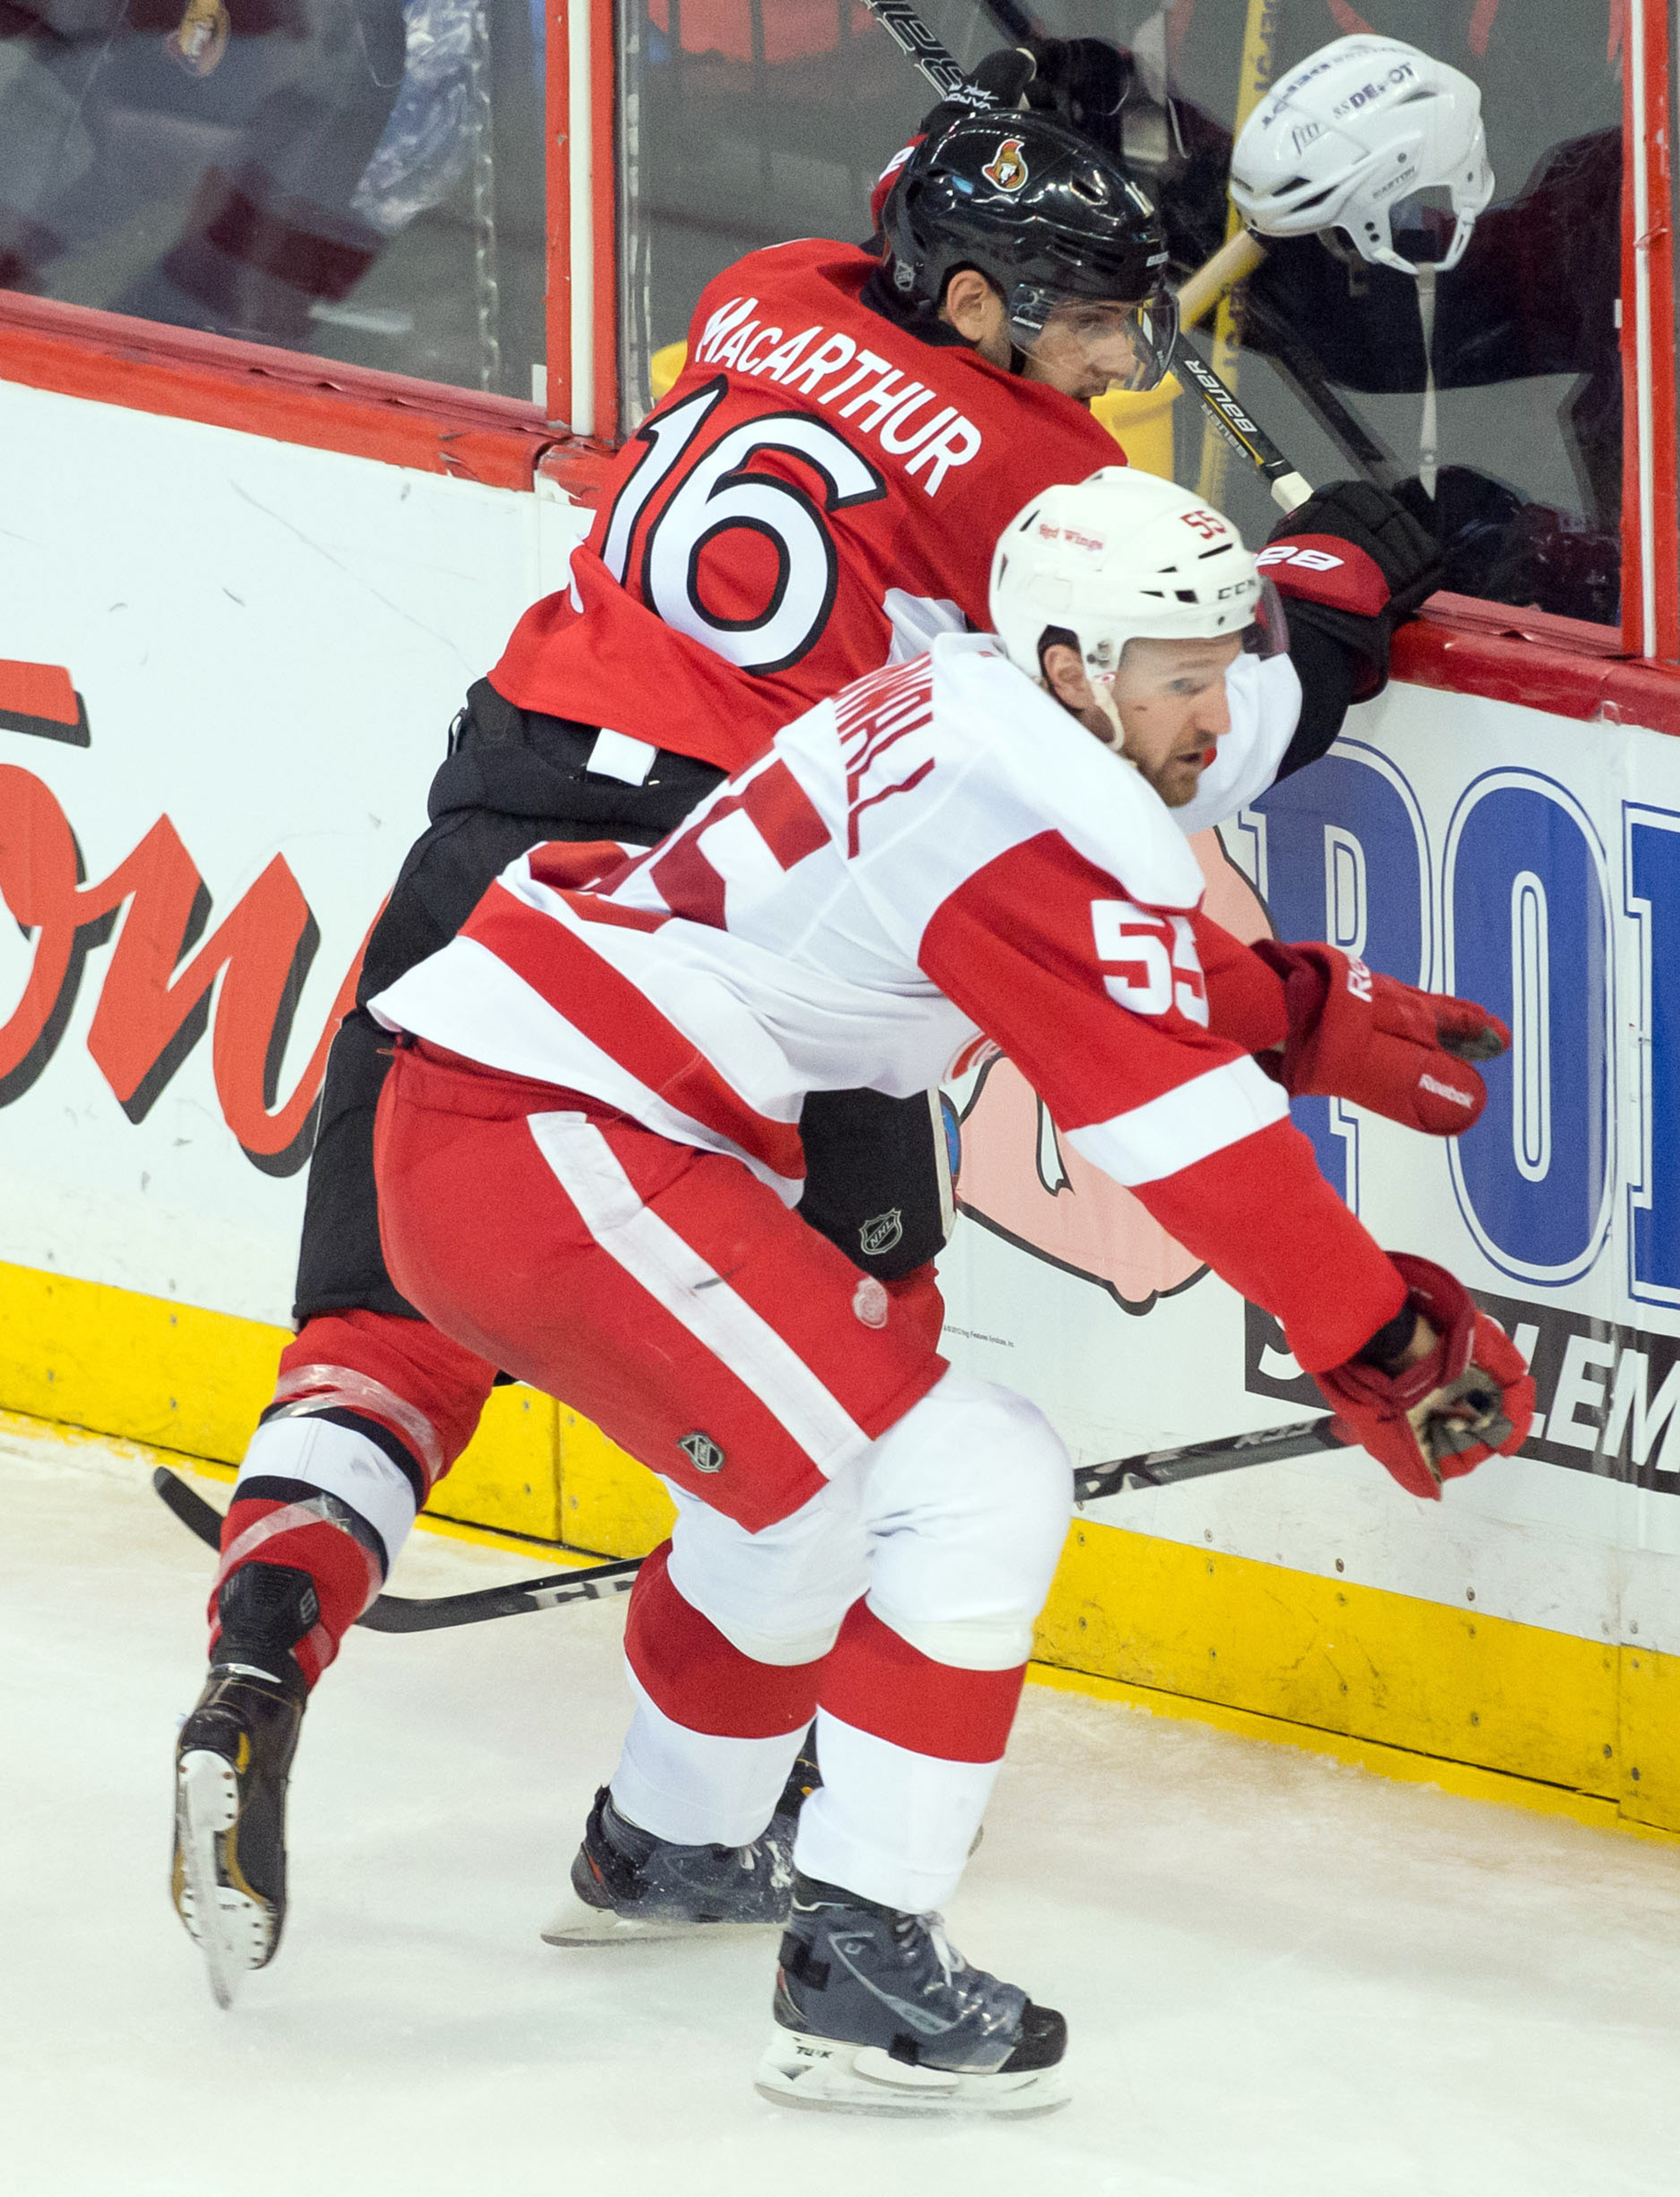 Clarke MacArthur plays well with others.